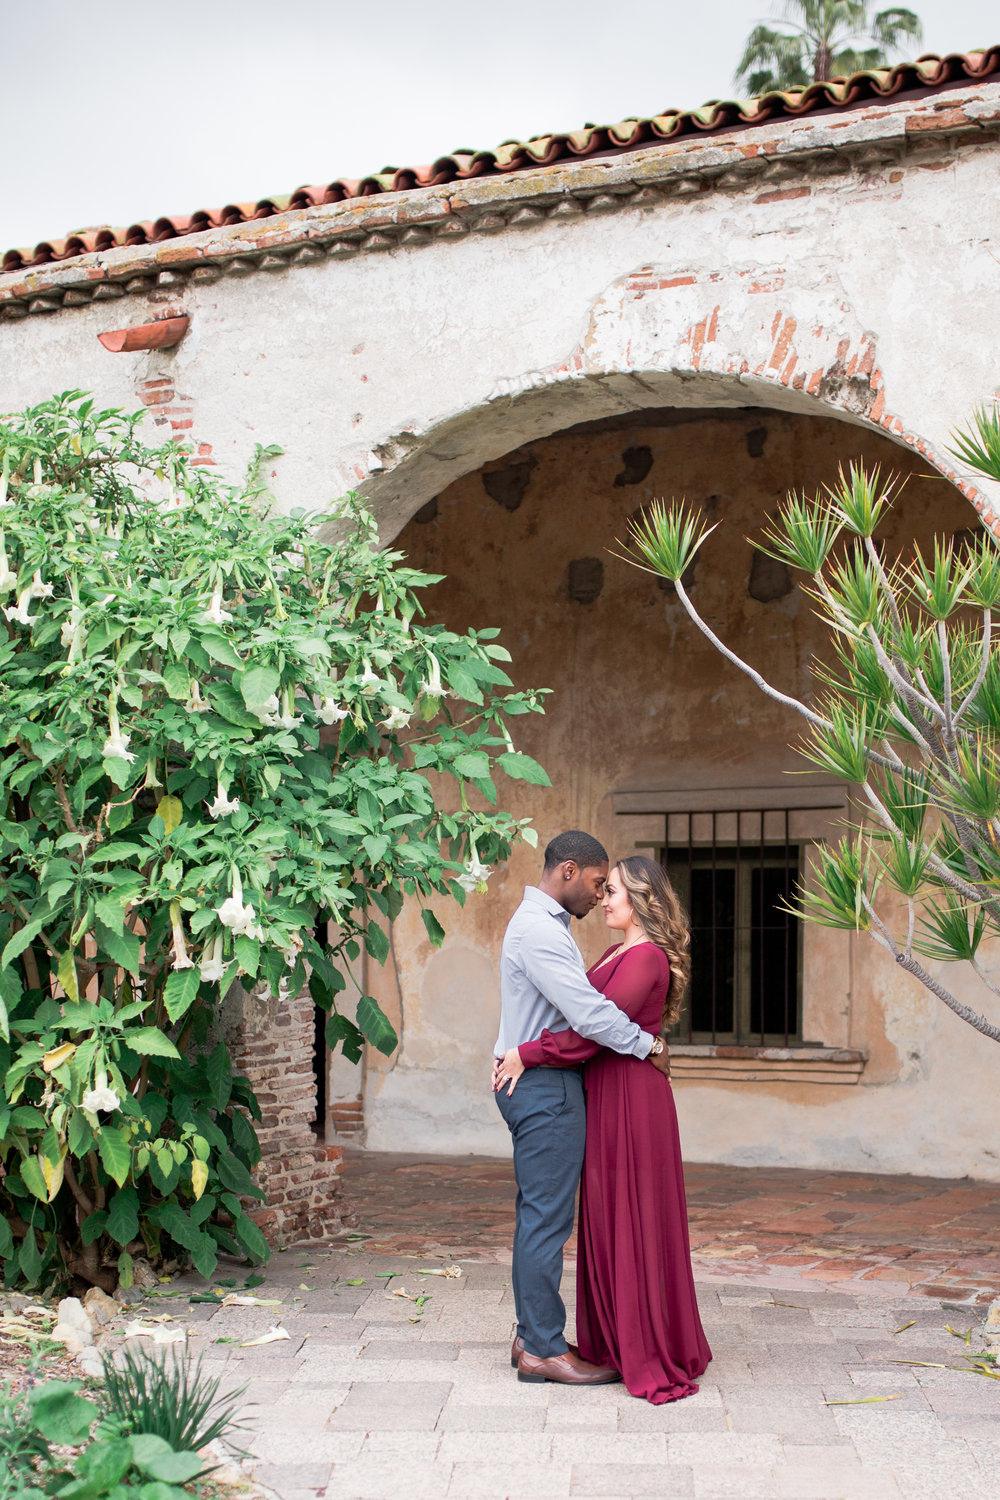 engagement photographer, san juan capistrano mission, heather anderson photography, winery weddings